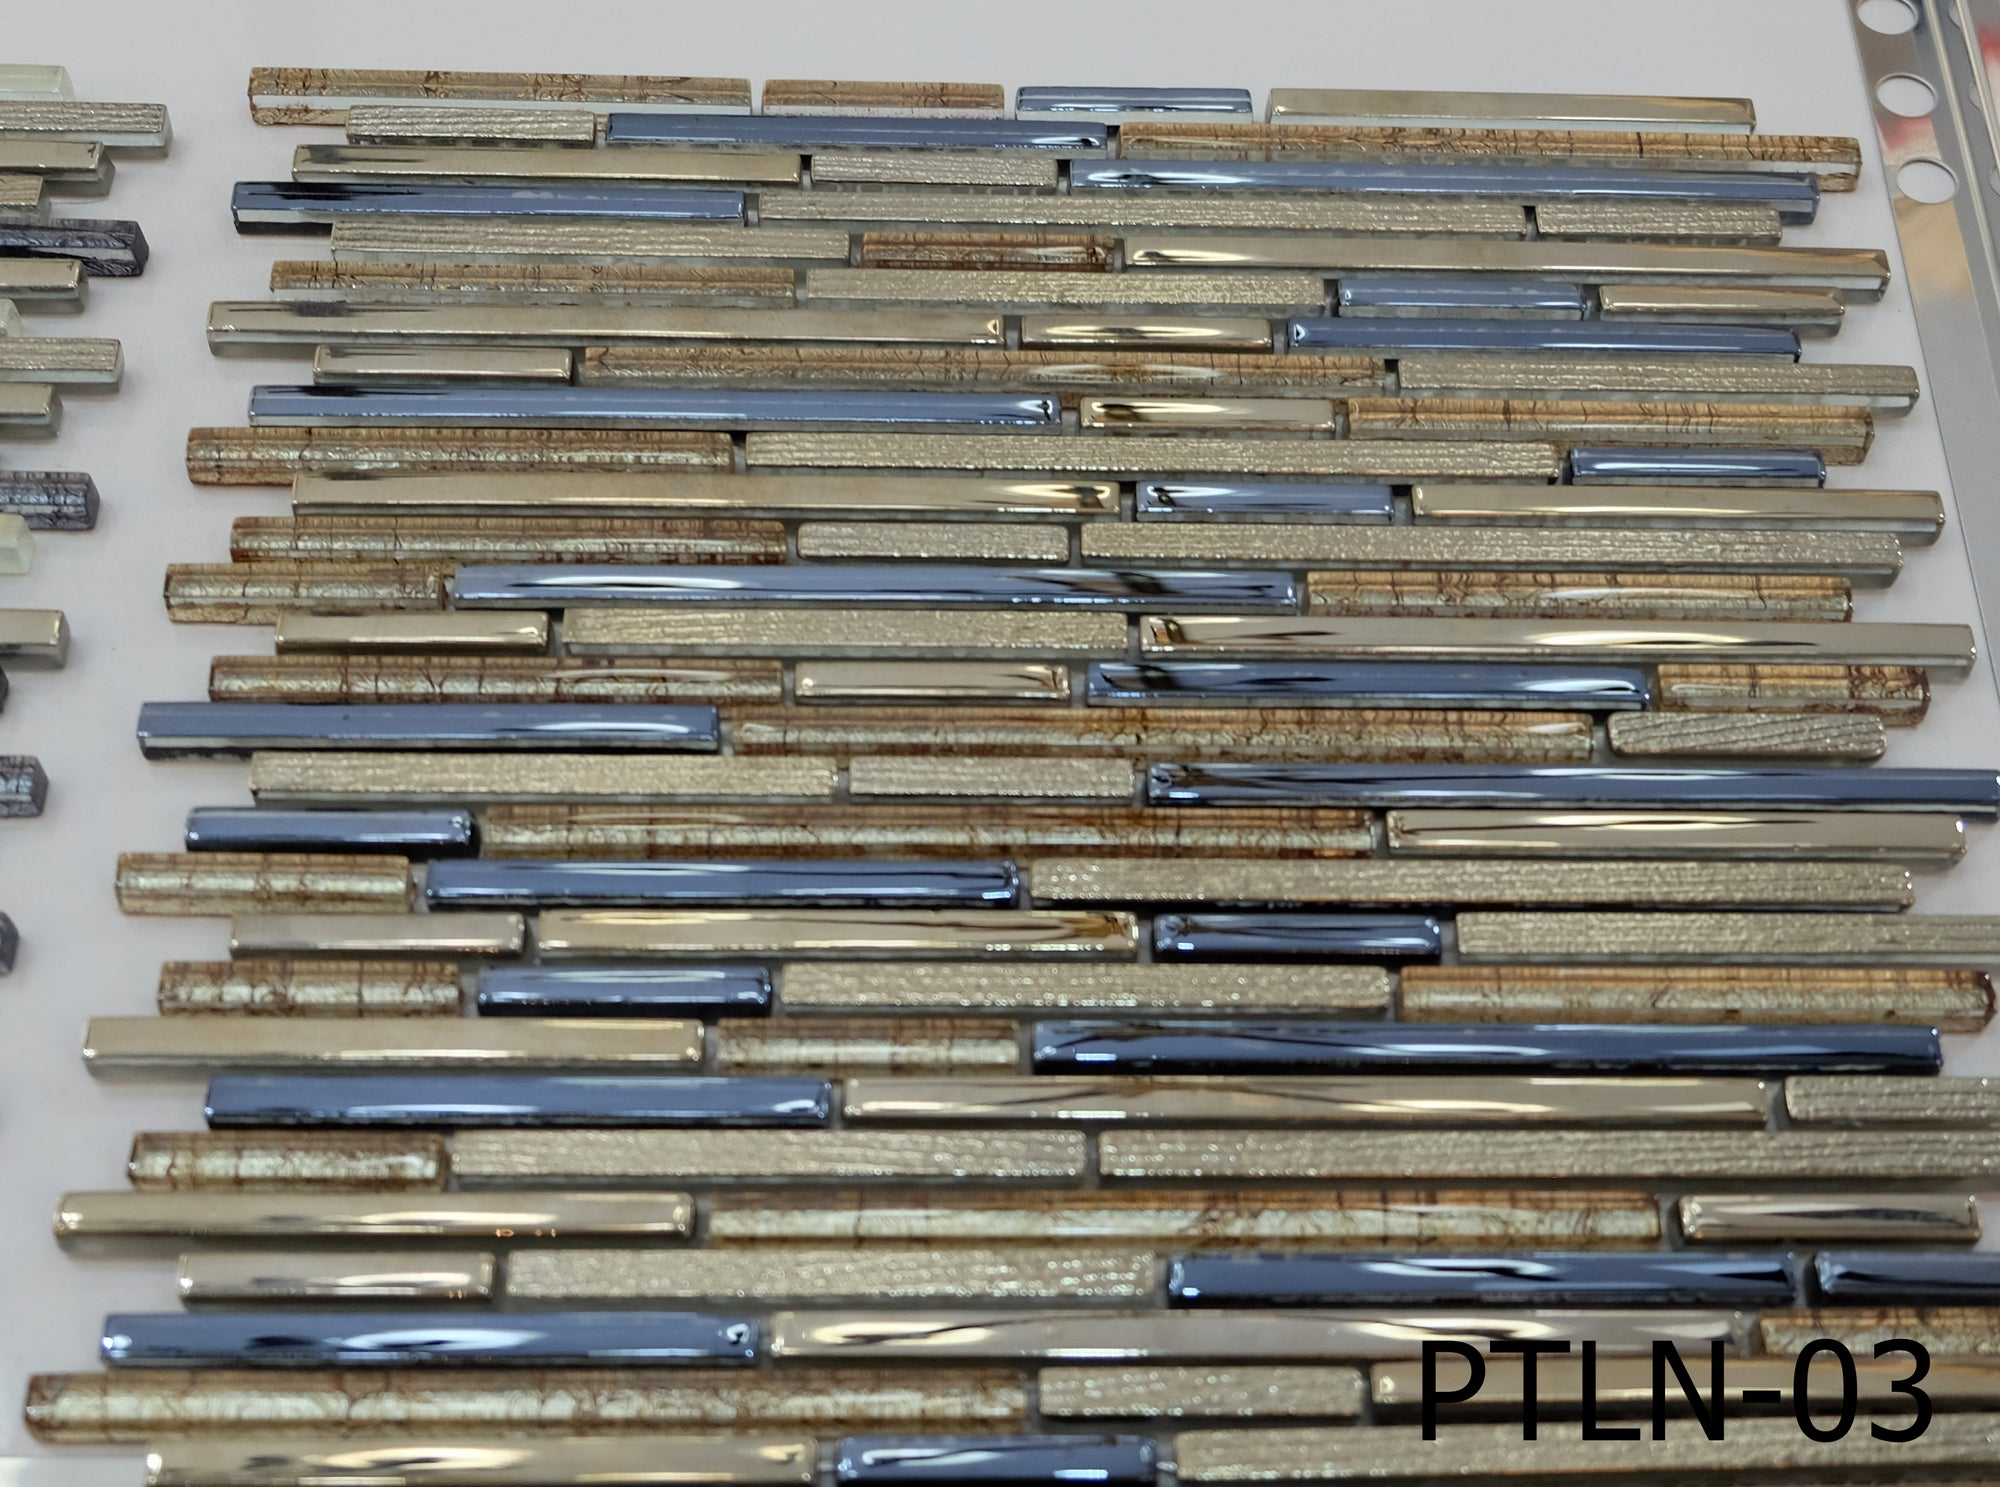 Staggered Bronze & Blue Glass Mosaic Tiles [PTLN-03]